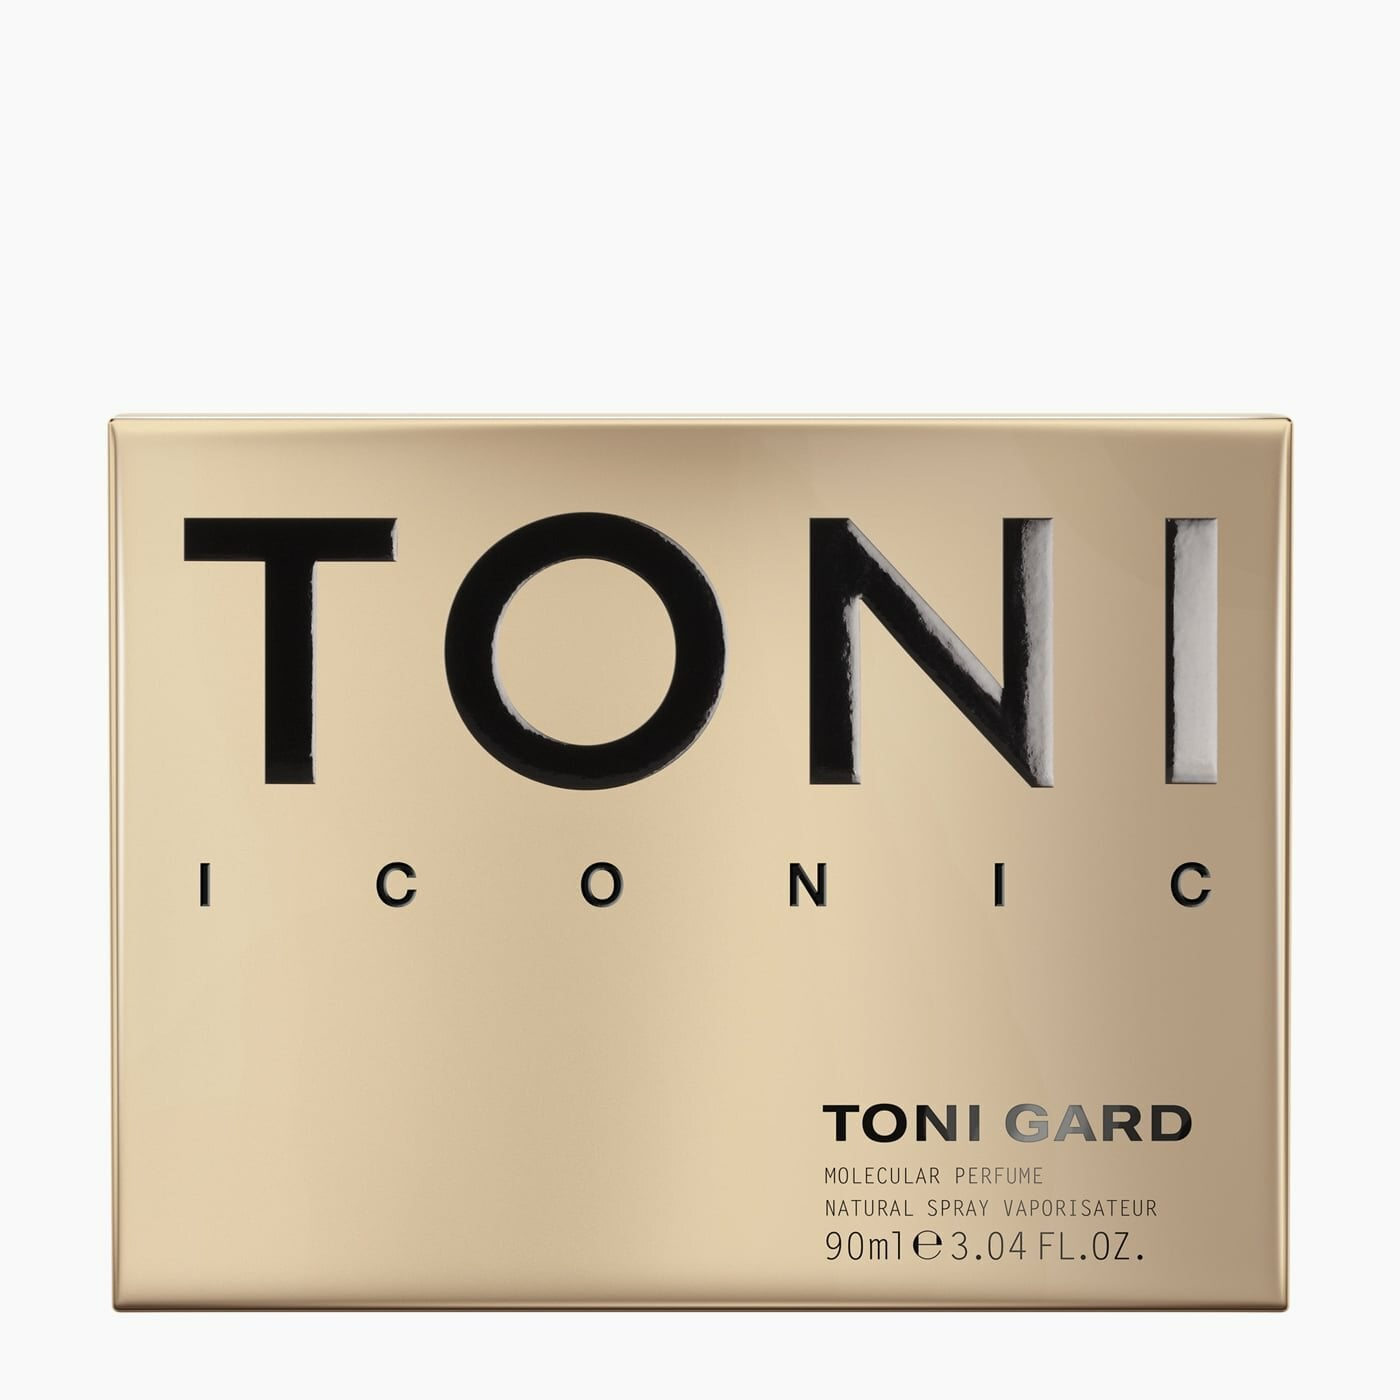 TONI ICONIC FOR WOMAN Moleculare Parfum / 90 ML